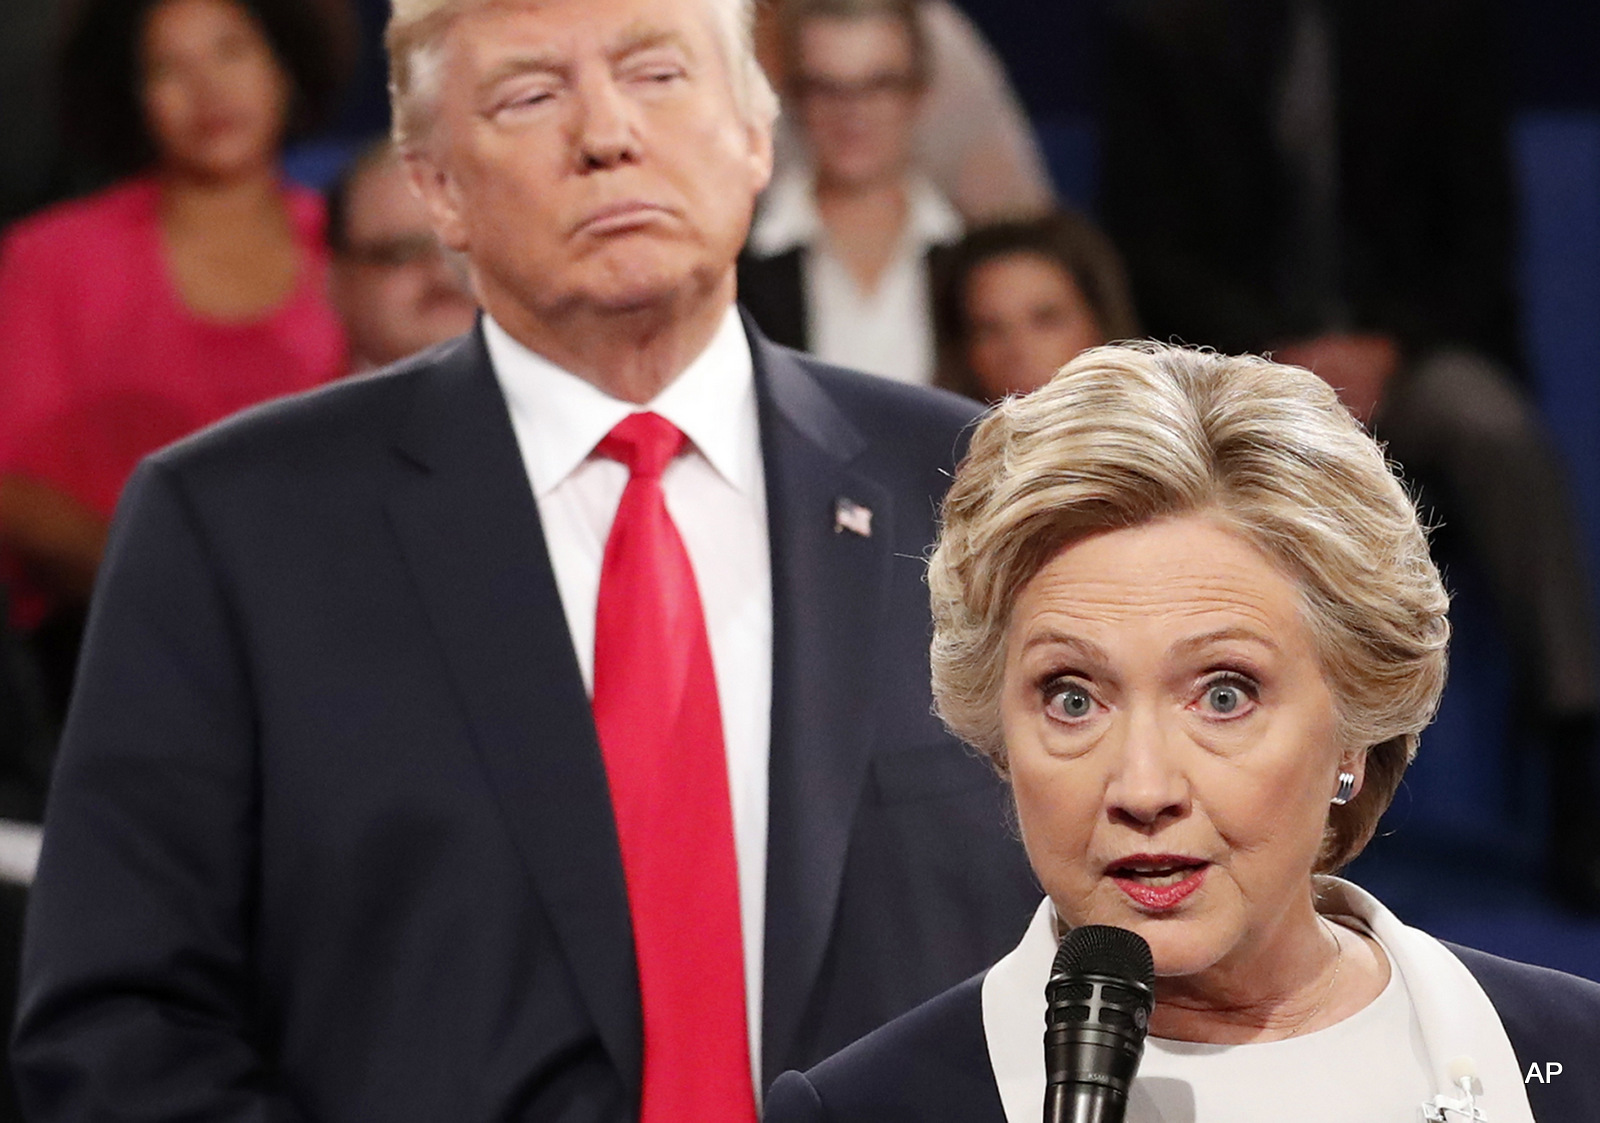 Democratic presidential nominee Hillary Clinton, right, speaks as Republican presidential nominee Donald Trump listens during the second presidential debate at Washington University in St. Louis, Sunday, Oct. 9, 2016.